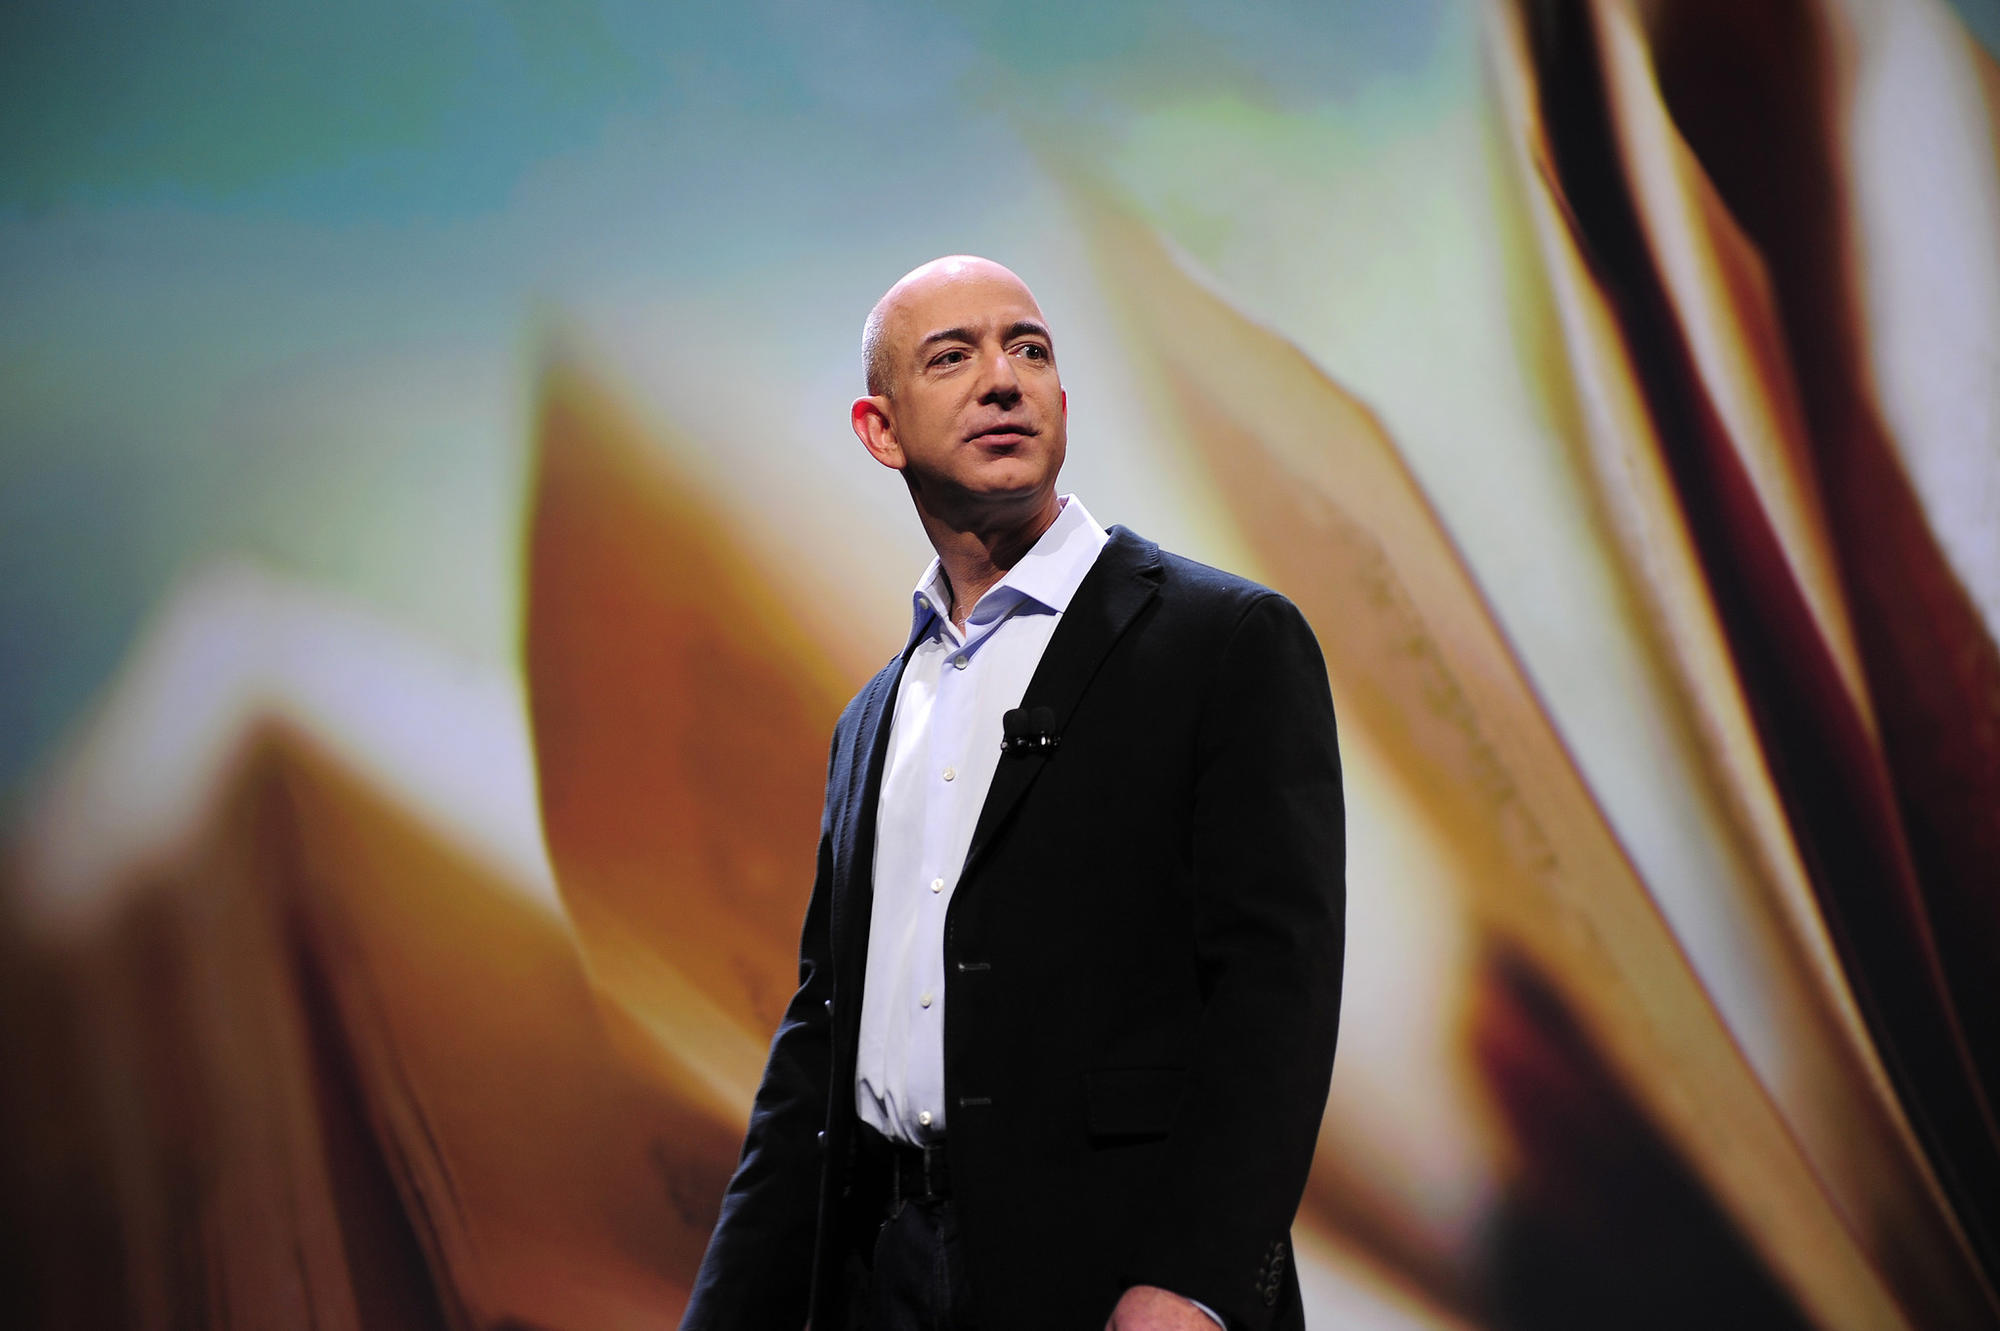 Jeff Bezos becomes world's only $100 billionaire with Amazon's Black Friday stock surge